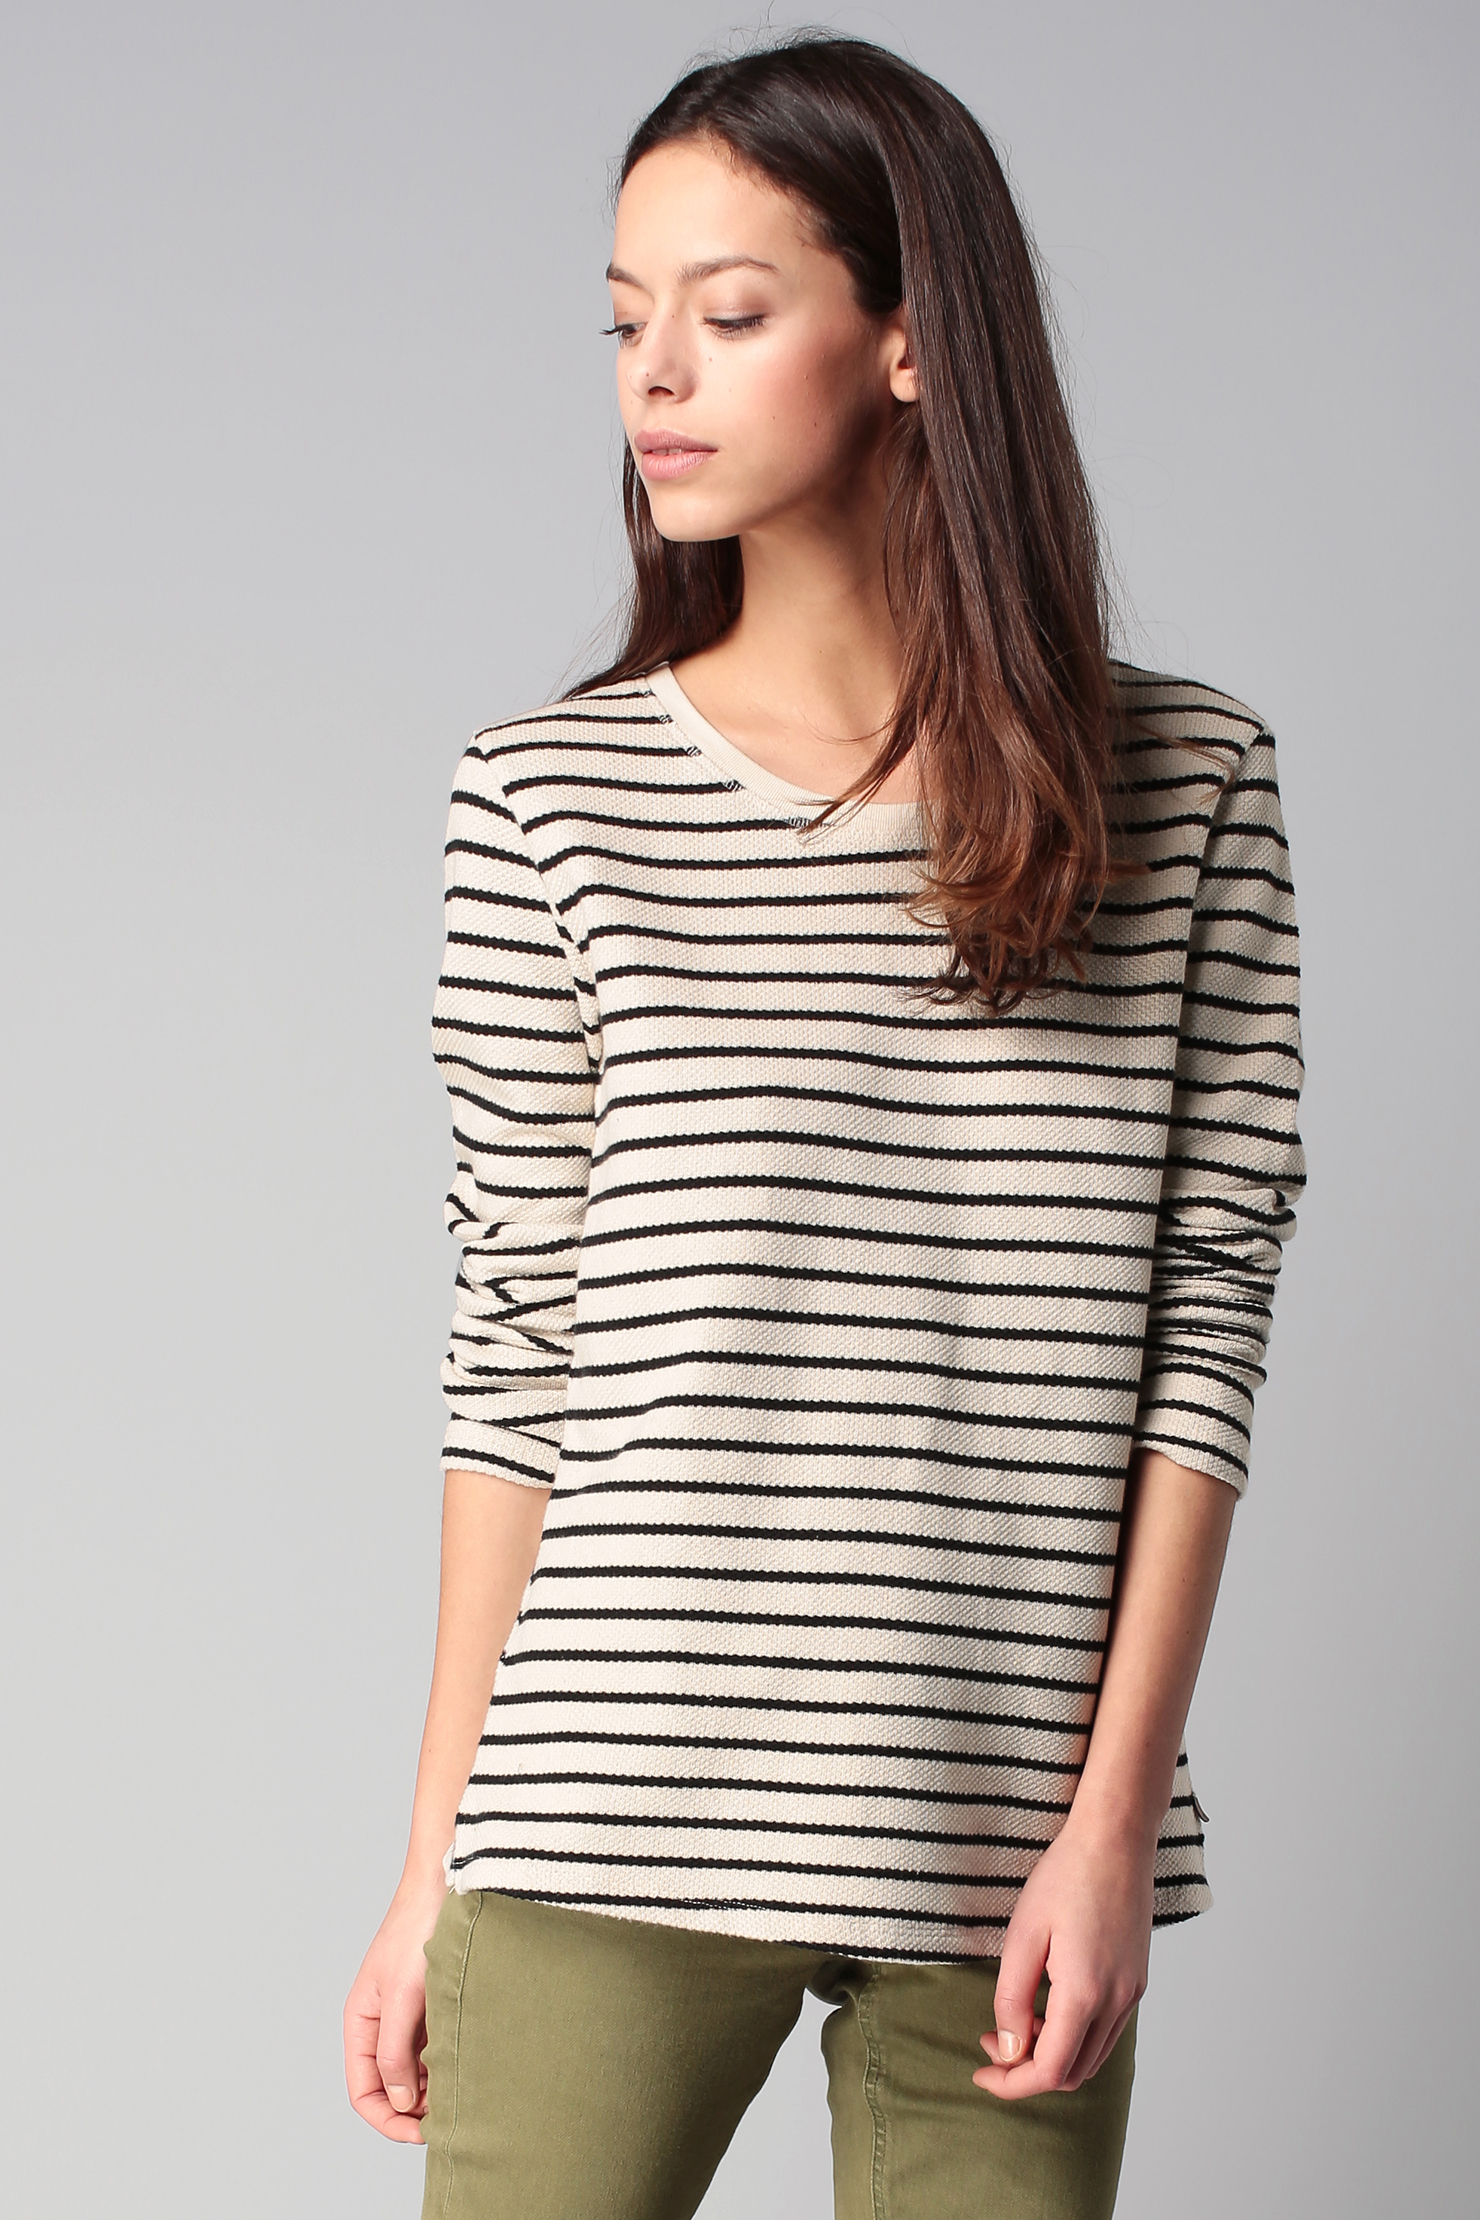 Lyst maison scotch jumper in white for About maison scotch